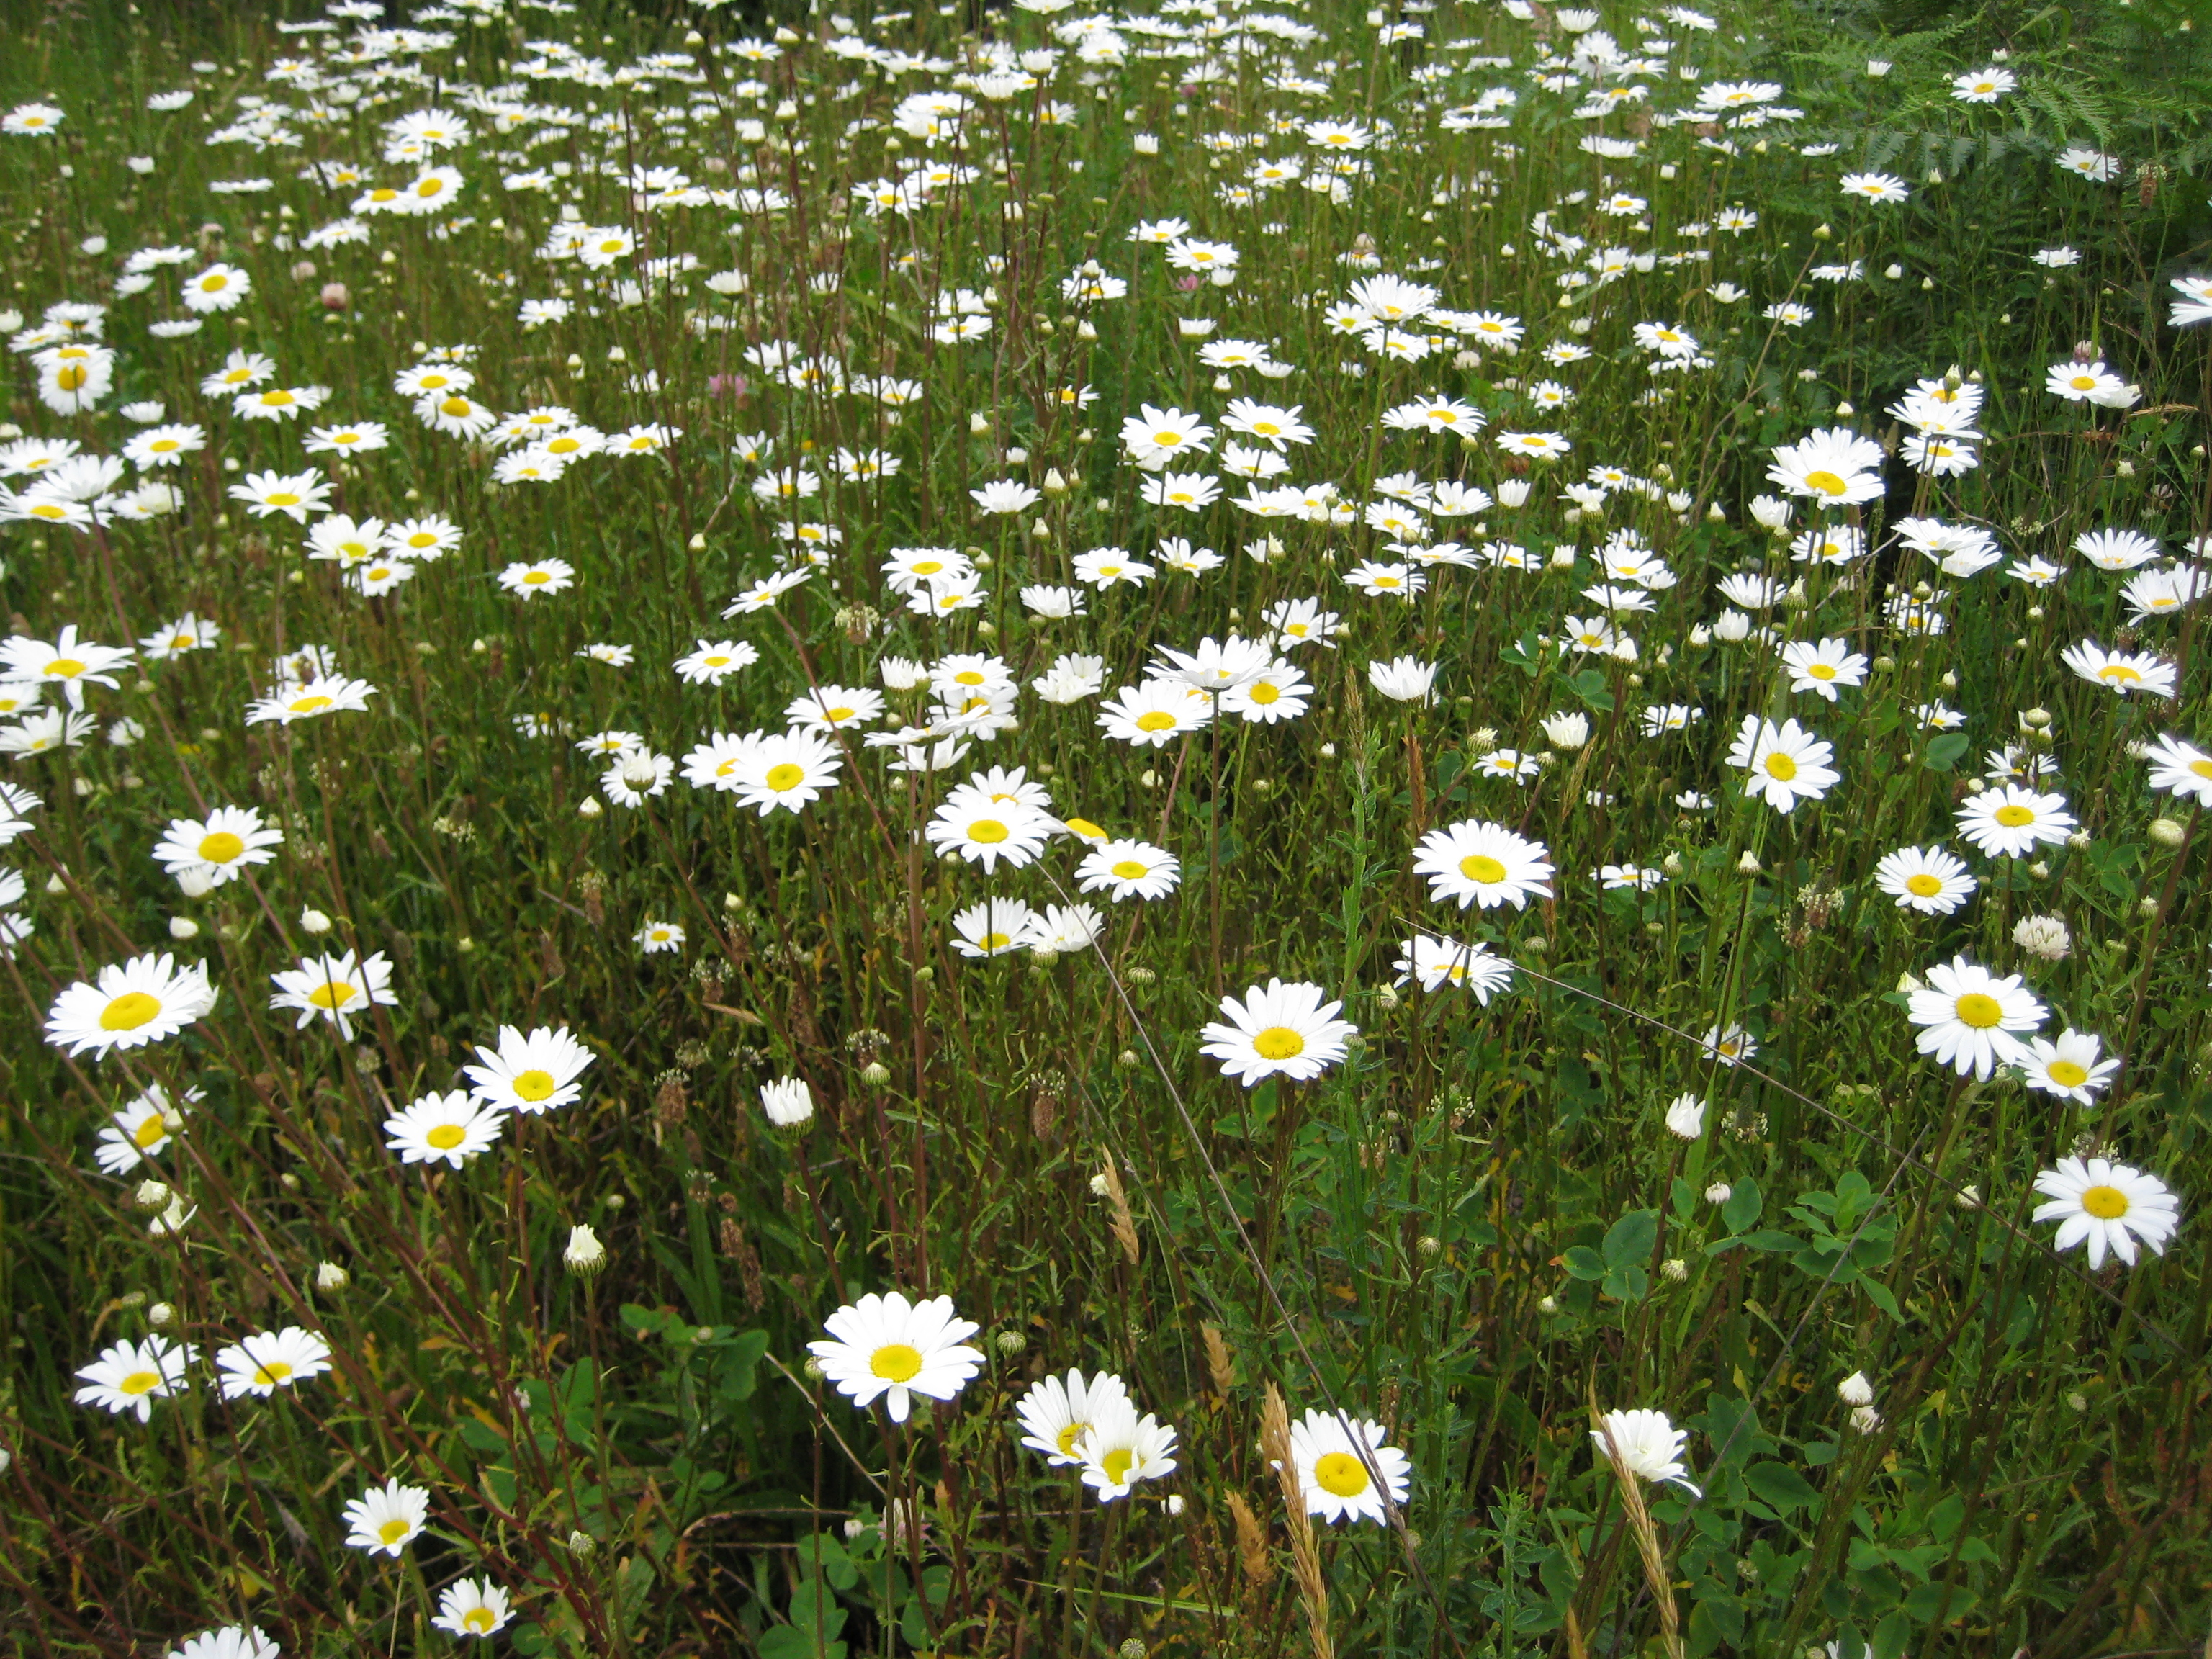 leucanthemum_vulgare_oxeye_daisy_plants_ssisc